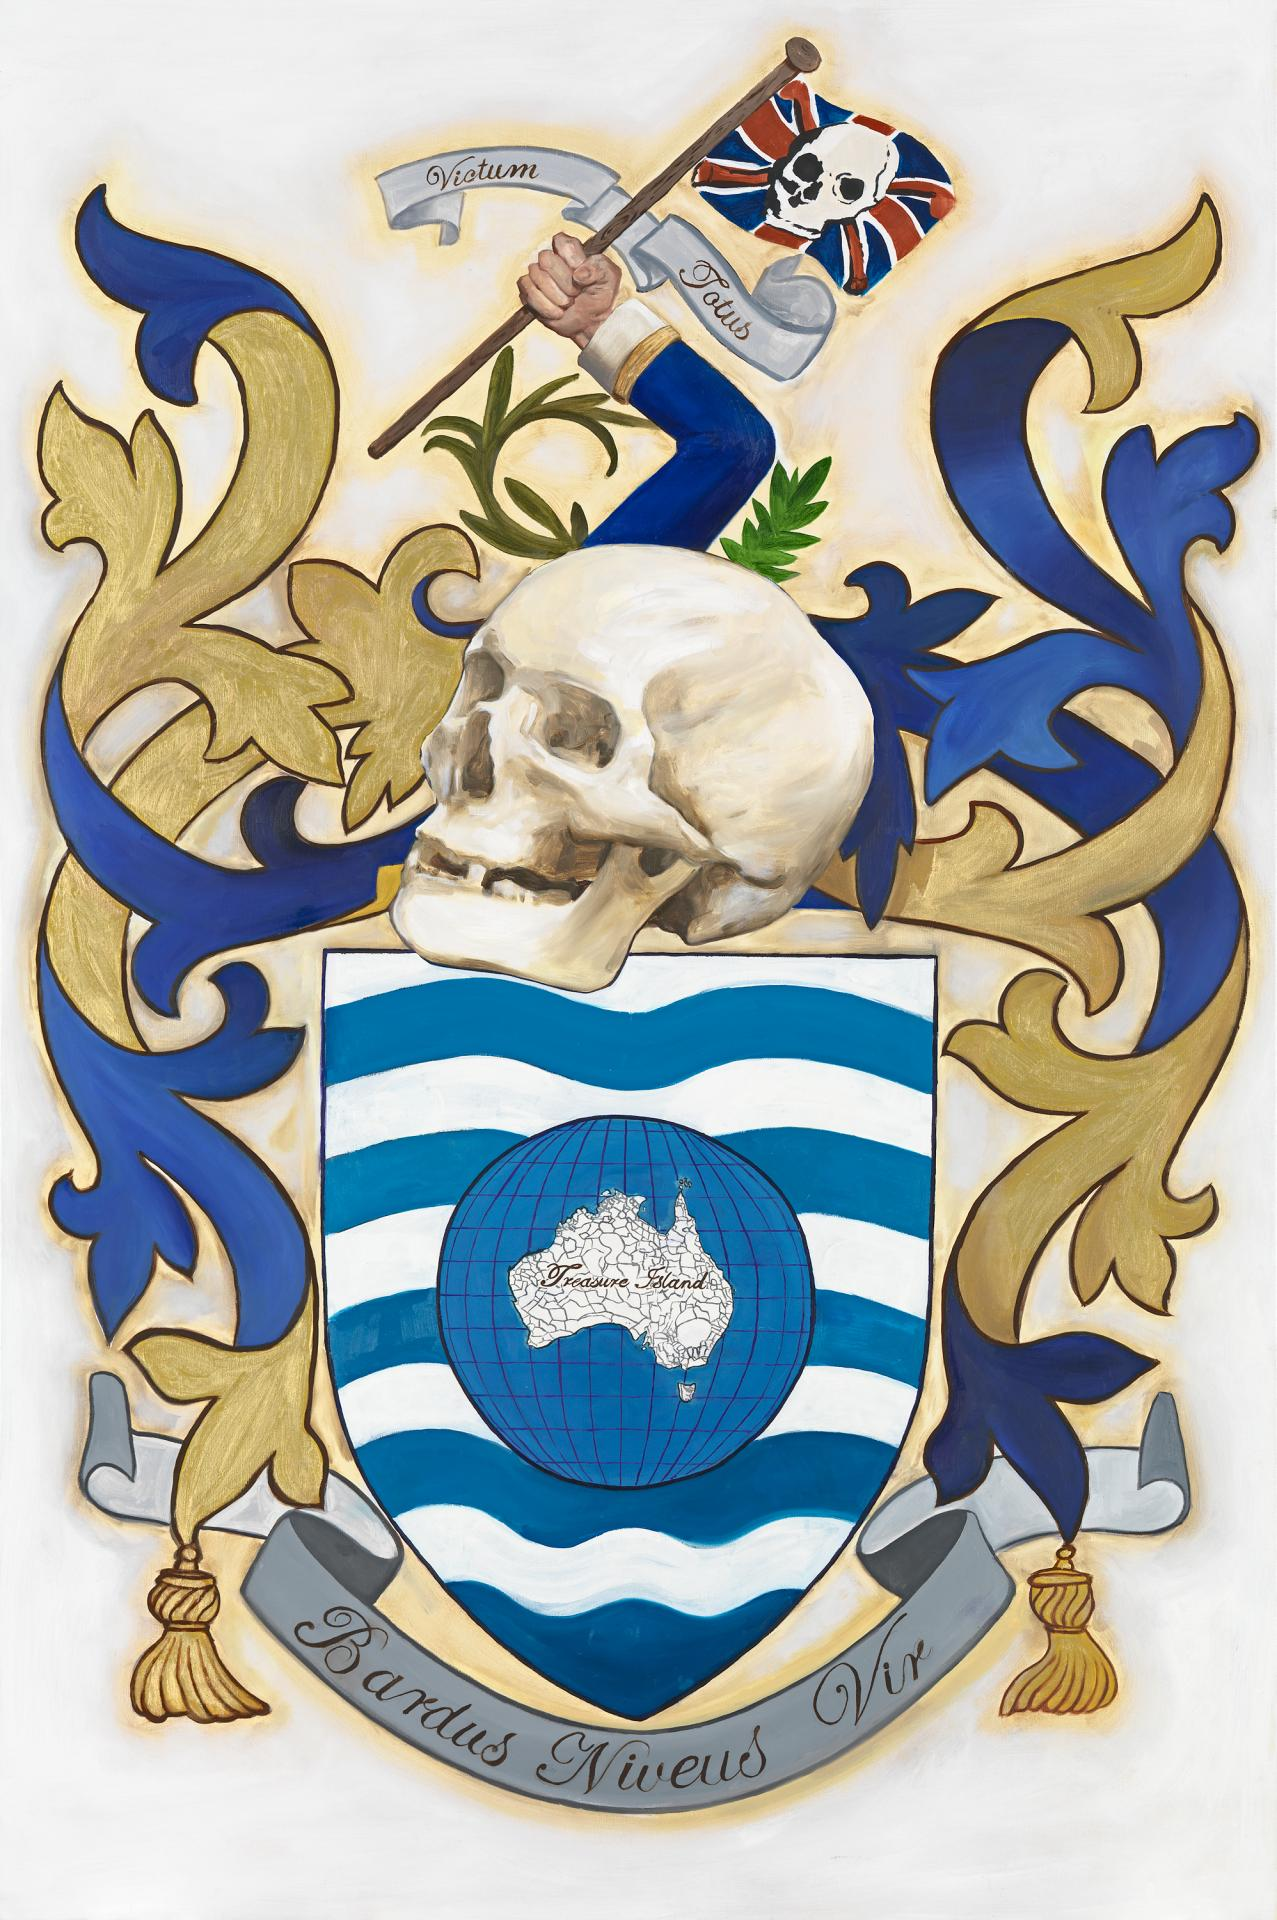 No Beard's coat of arms